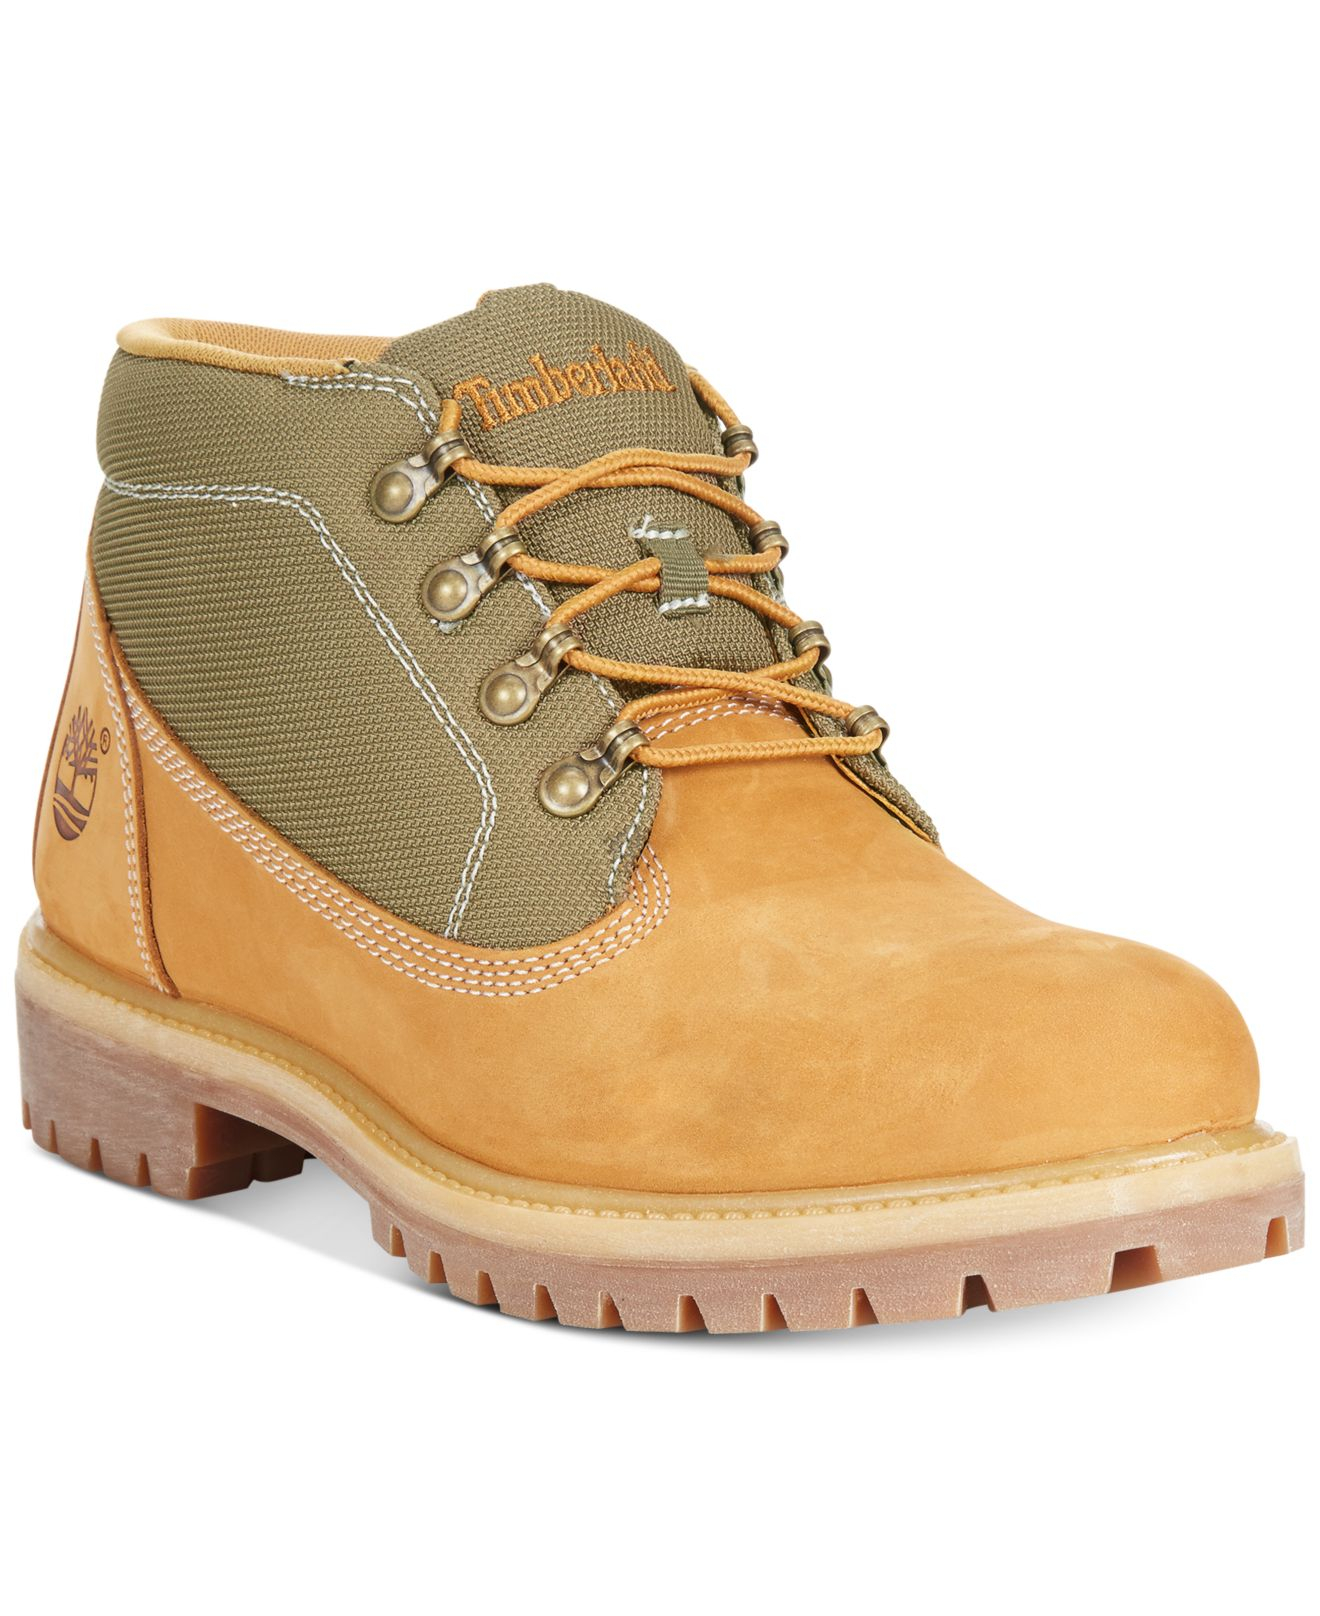 bfb3742c8dba Lyst - Timberland Icon Campsite Boots in Natural for Men